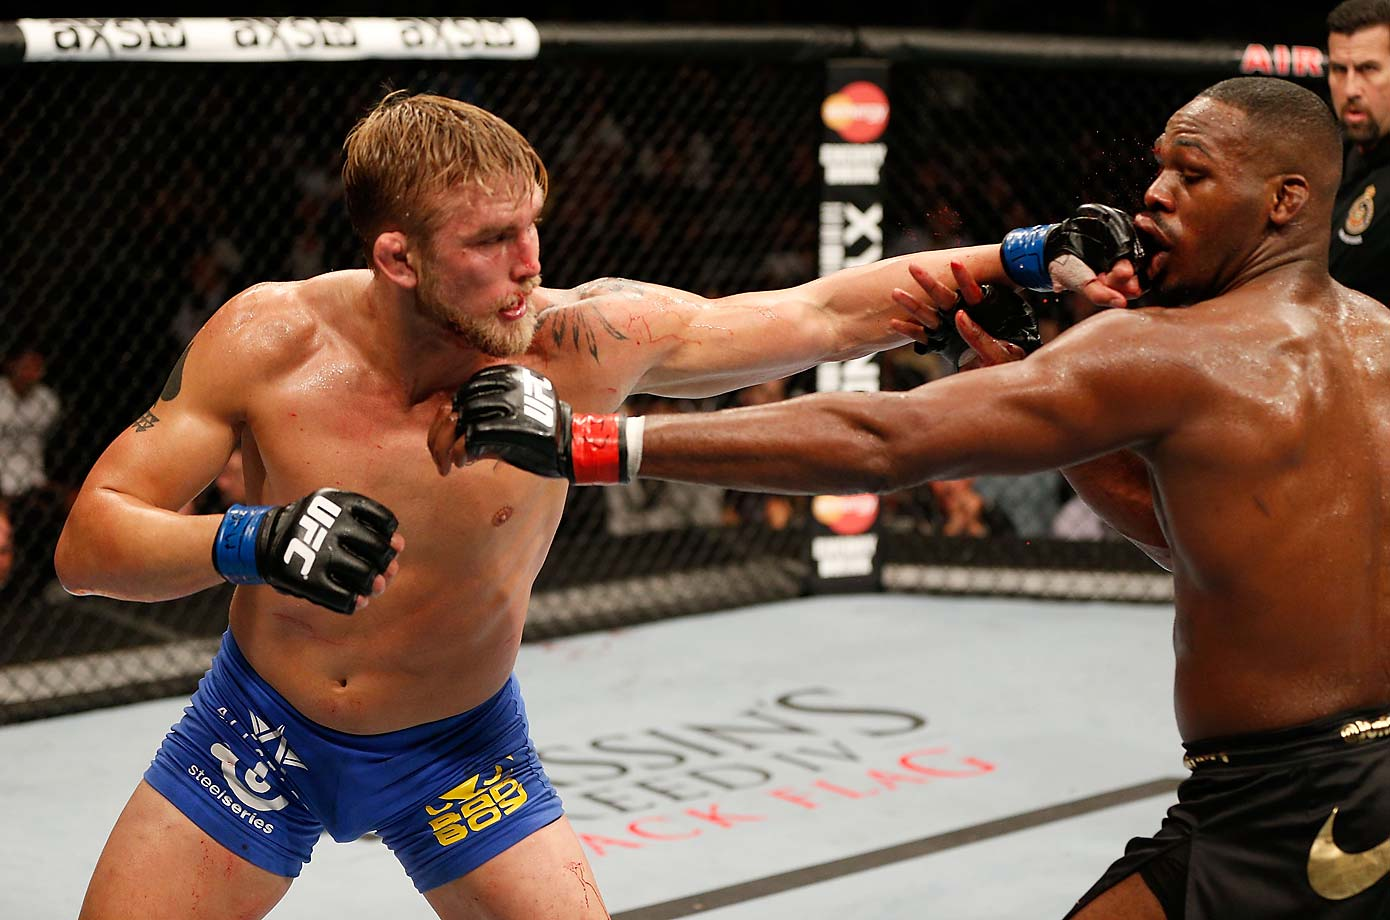 Jones and Gustafsson tag each other with a punch in their memorable fight in the main event of UFC 165.